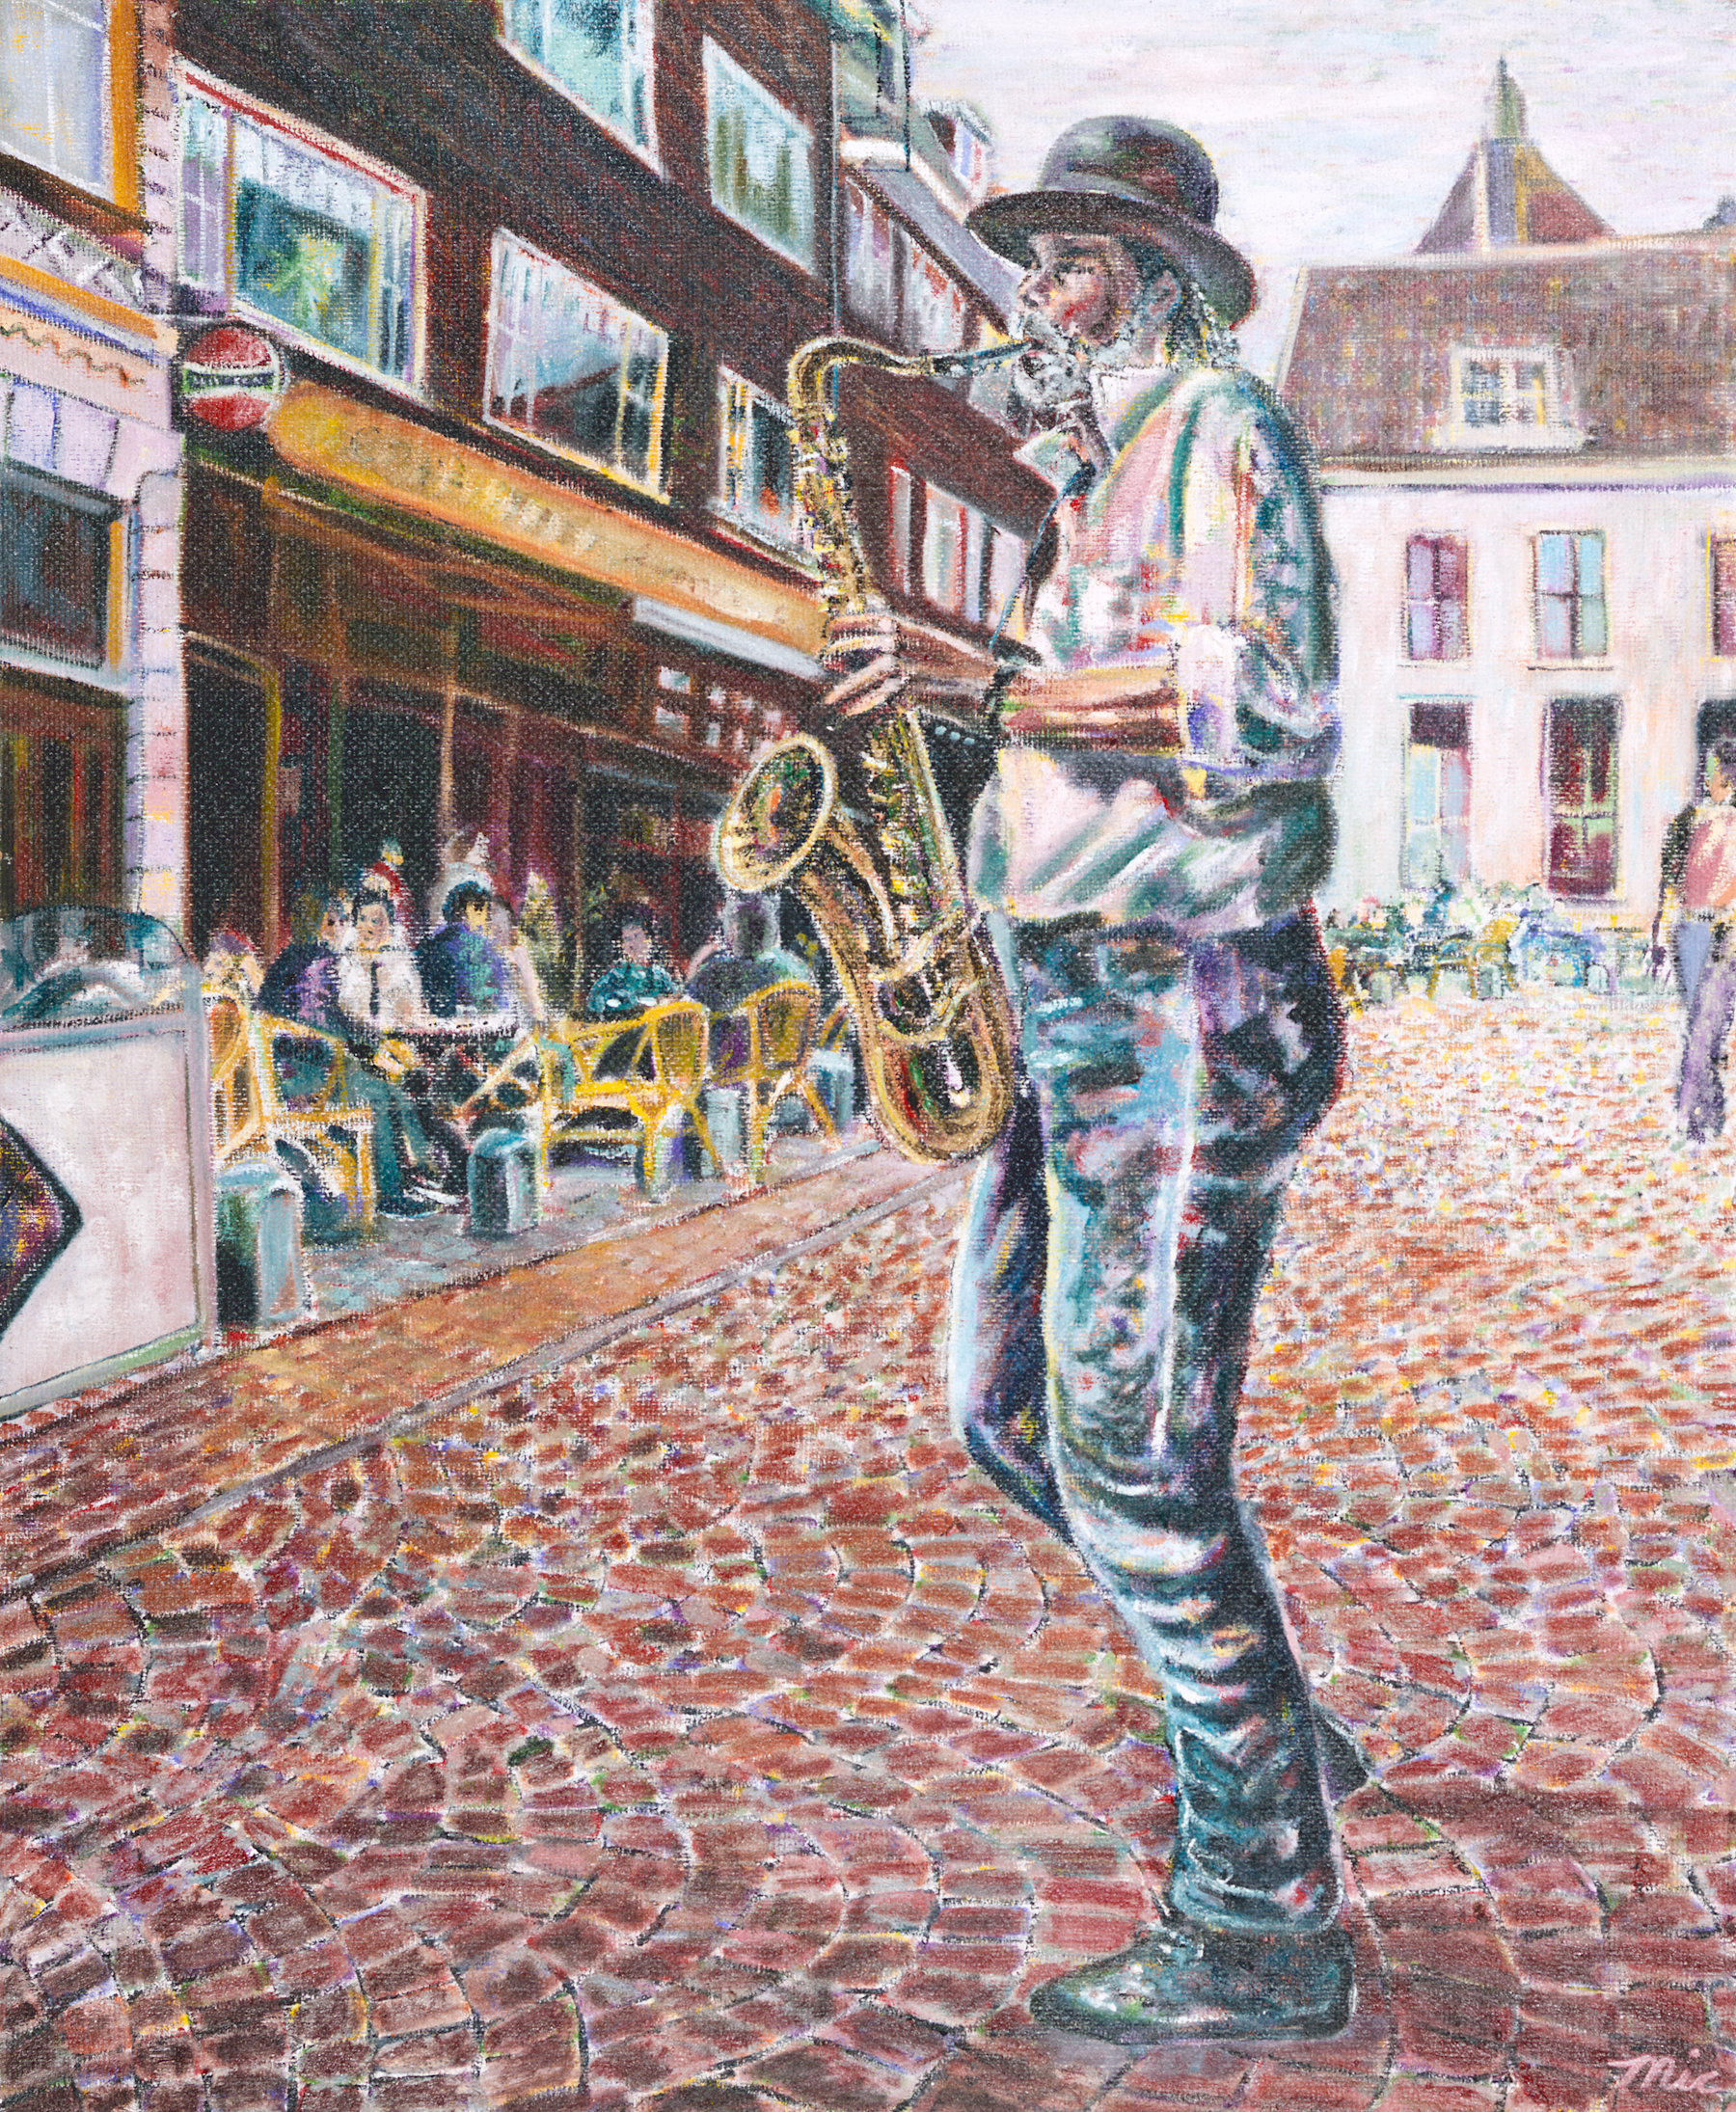 Sax Player Utrecht Netherlands - Oil; on panel Private collection Raymond Rigazio South Beach MiamiGiclee Limited Edition and canvas prints are available. Please visit the prints gallery.